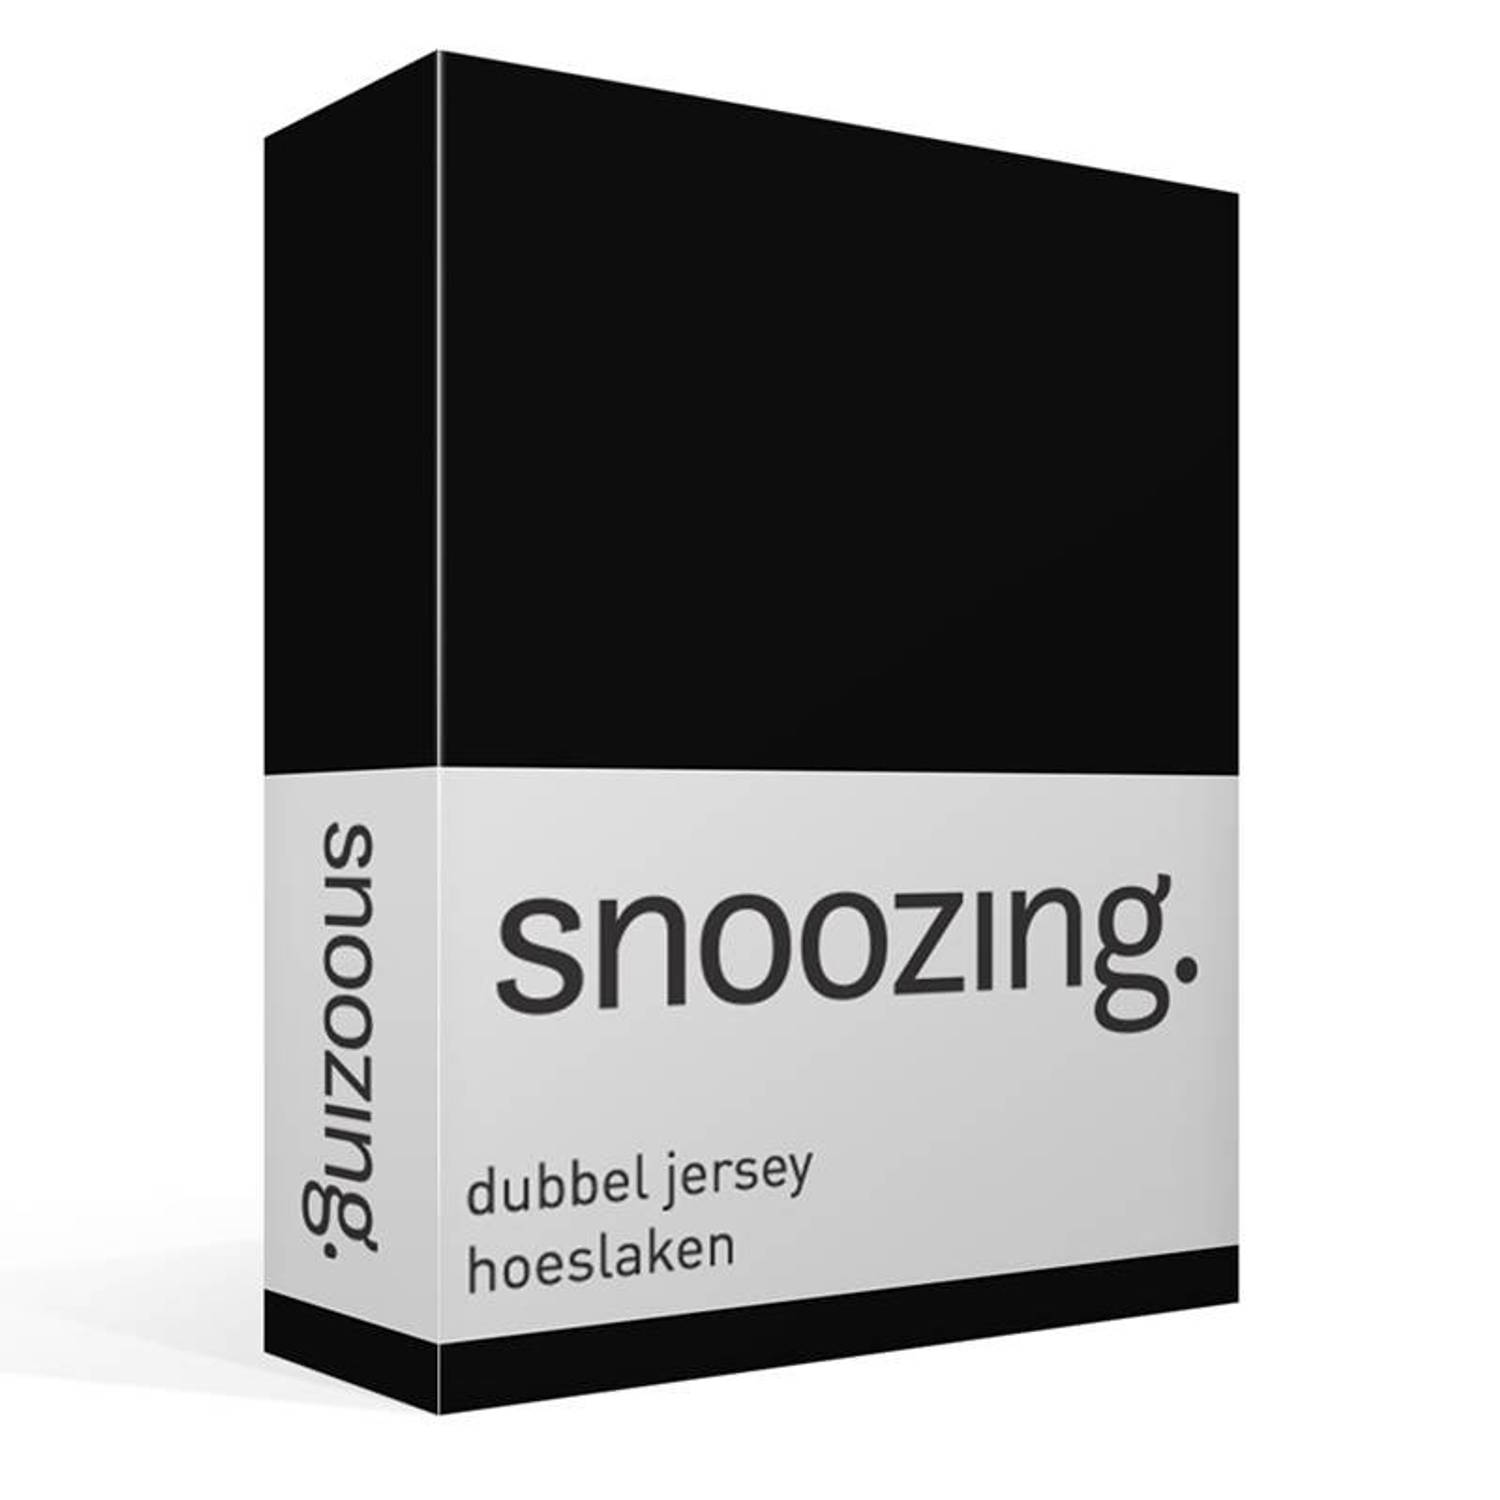 Snoozing dubbel jersey hoeslaken - 1-persoons (80/90x200 cm)